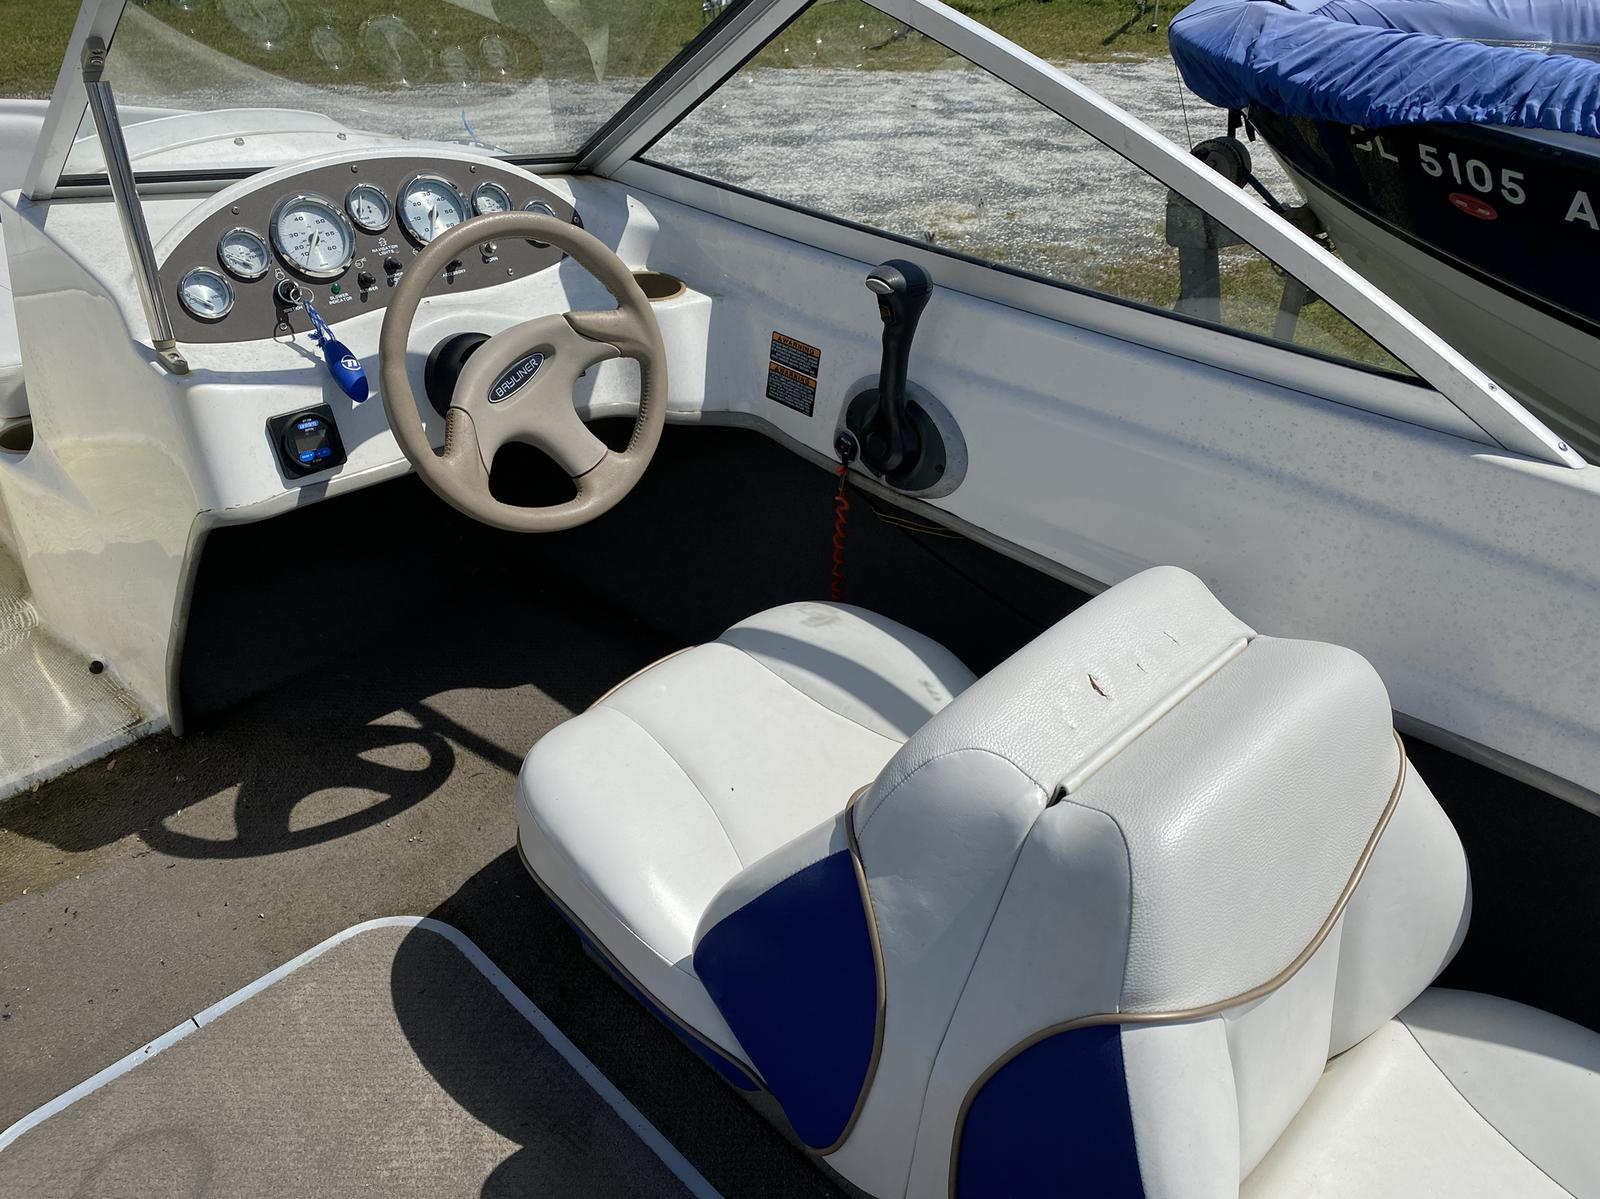 2003 Bayliner boat for sale, model of the boat is 175 Bowrider & Image # 9 of 10